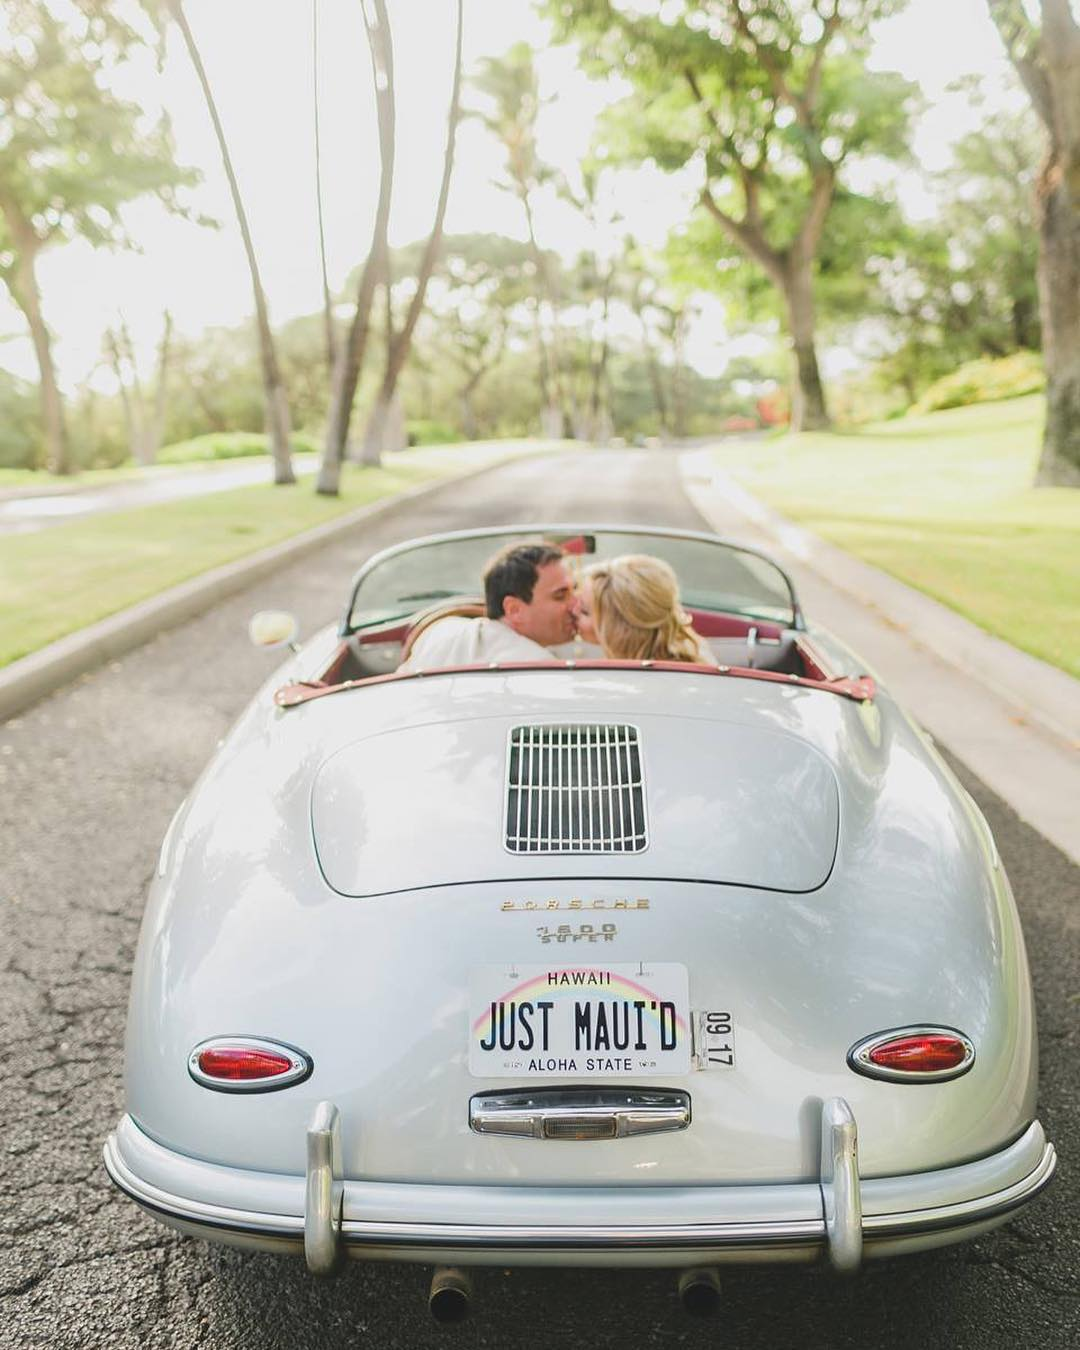 Give Your Day a James dean Ending - Once upon a time, Jerome and Yvonne Bosch lived in Michigan, where snow often covered the ground and the heart of the US auto industry beat around them. But after a dreamy vacation in Hawaii they started believing they might be ready to trade in their snow boots for surfboards. They moved to Maui in 2018 and took over Maui Roadsters, a family-owned company renting out 1957 Porsche 356 Speedster Reproductions. Their fleet of speedsters are sleek, timeless, and each given a distinct Hawaiian name that speaks to its unique qualities. So whether you're leaning toward the elegant Lani or the purr of the sexy Hoku, make sure you book your picture-perfect ride into the sunset today.Visit WebsiteMaui, HawaiiPhone: 1 808 339 6204Email: info@mauiroadsters.com